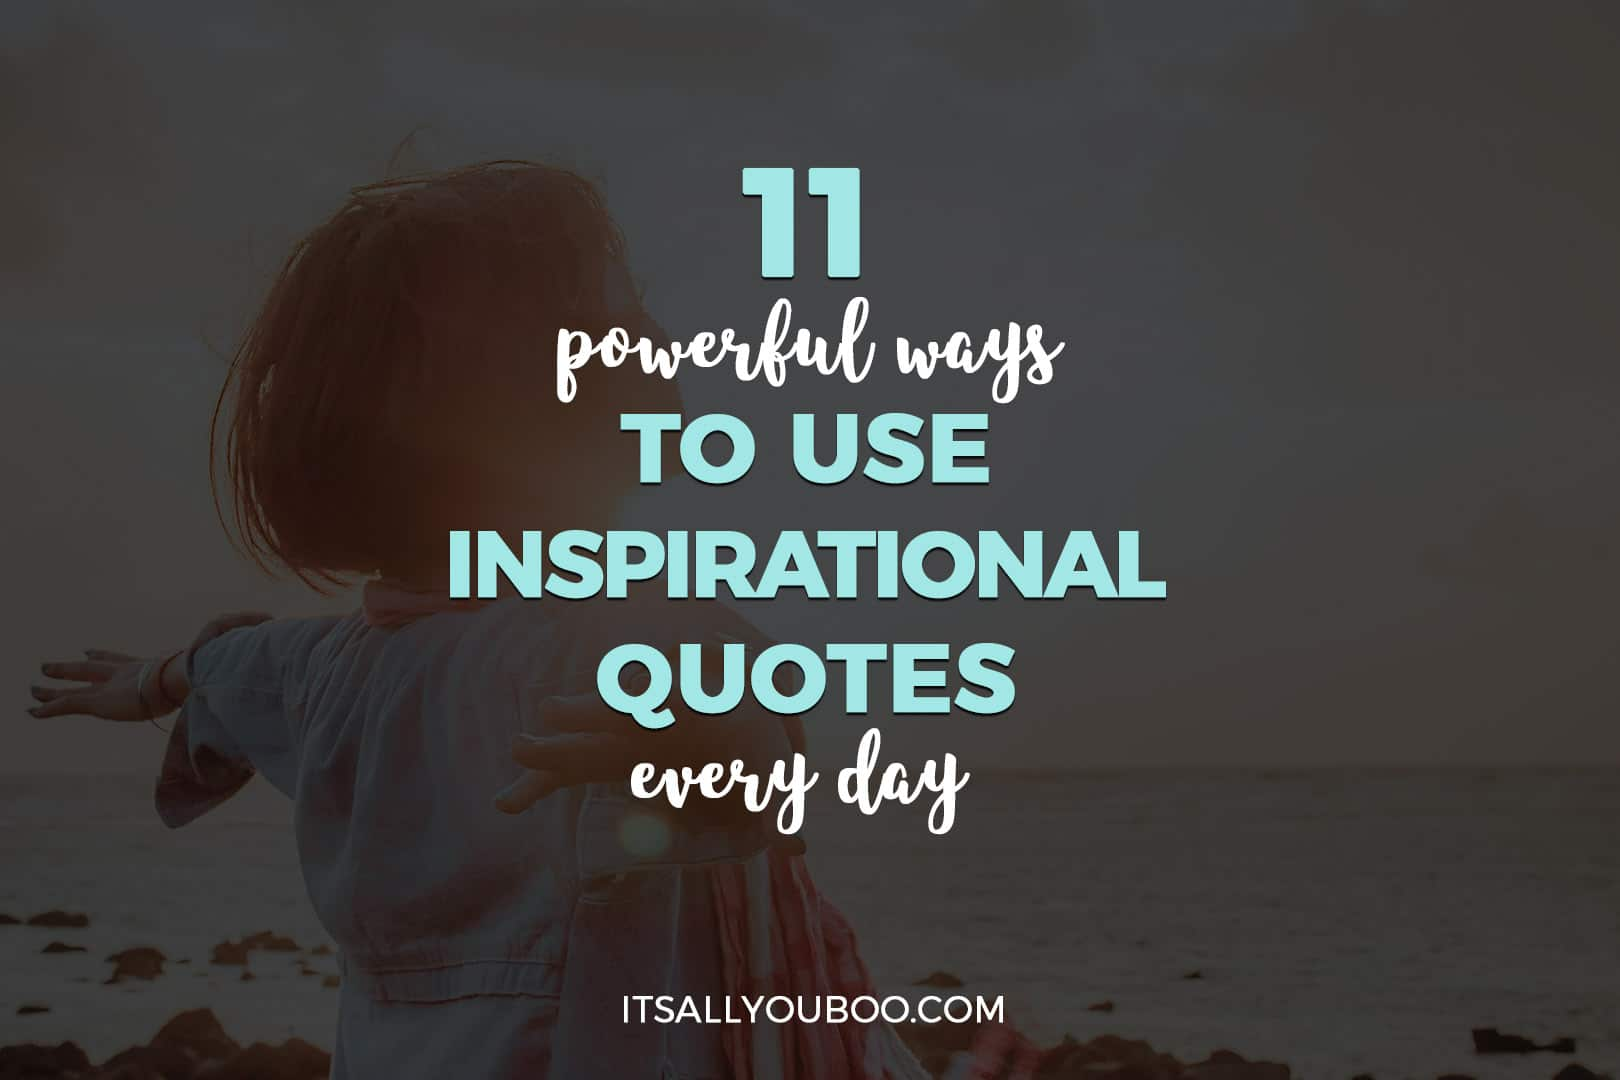 11 Powerful Ways to Use Inspirational Quotes Every Day